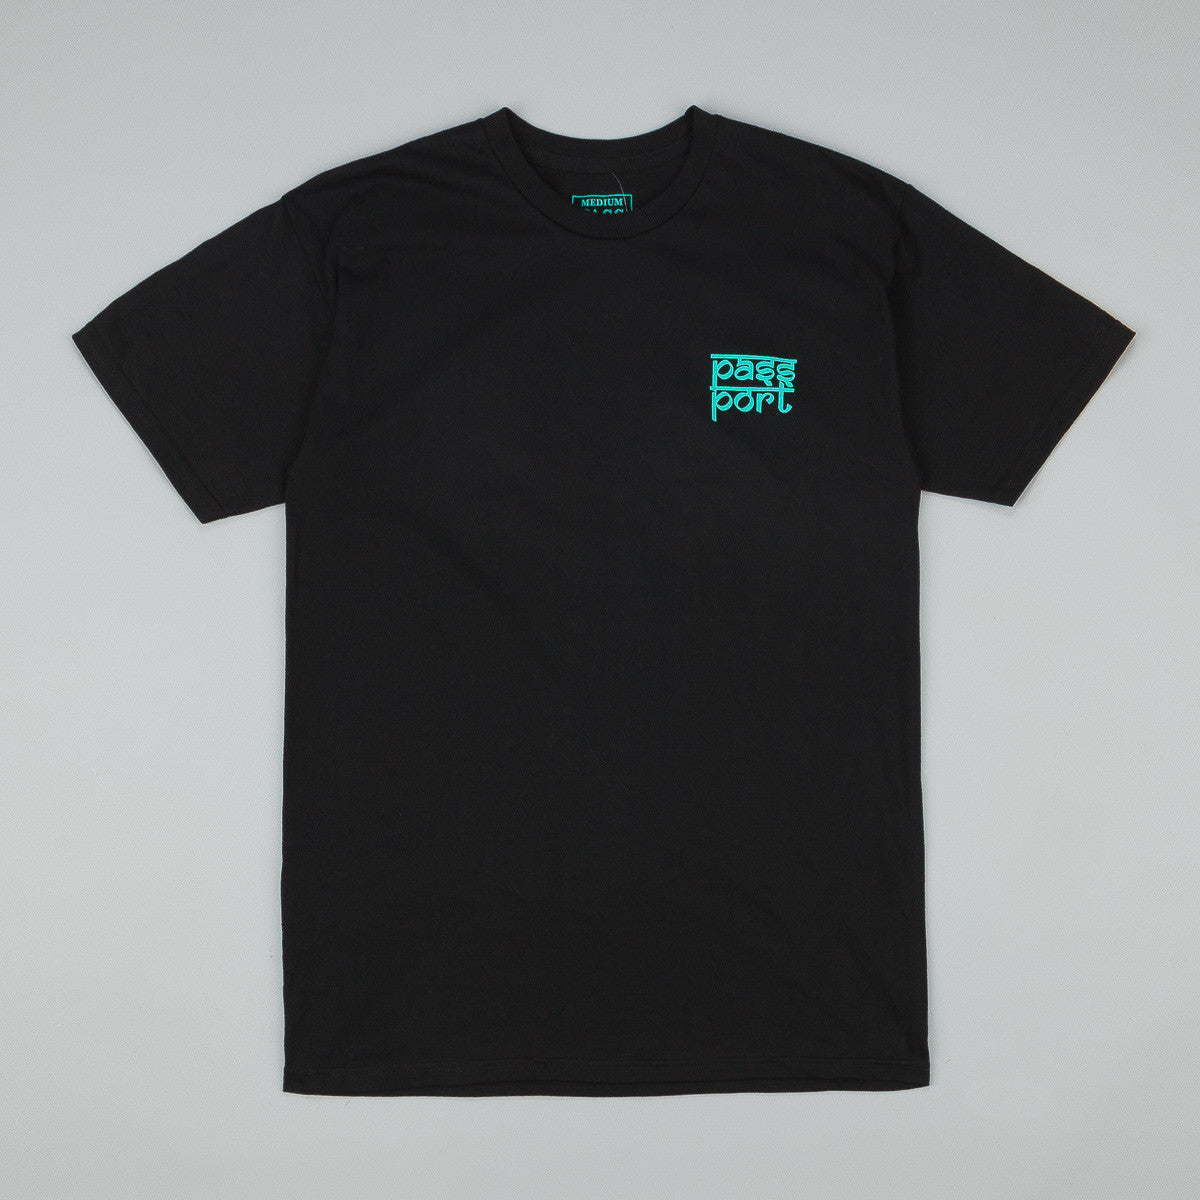 Pass Port Likely Floral T-Shirt